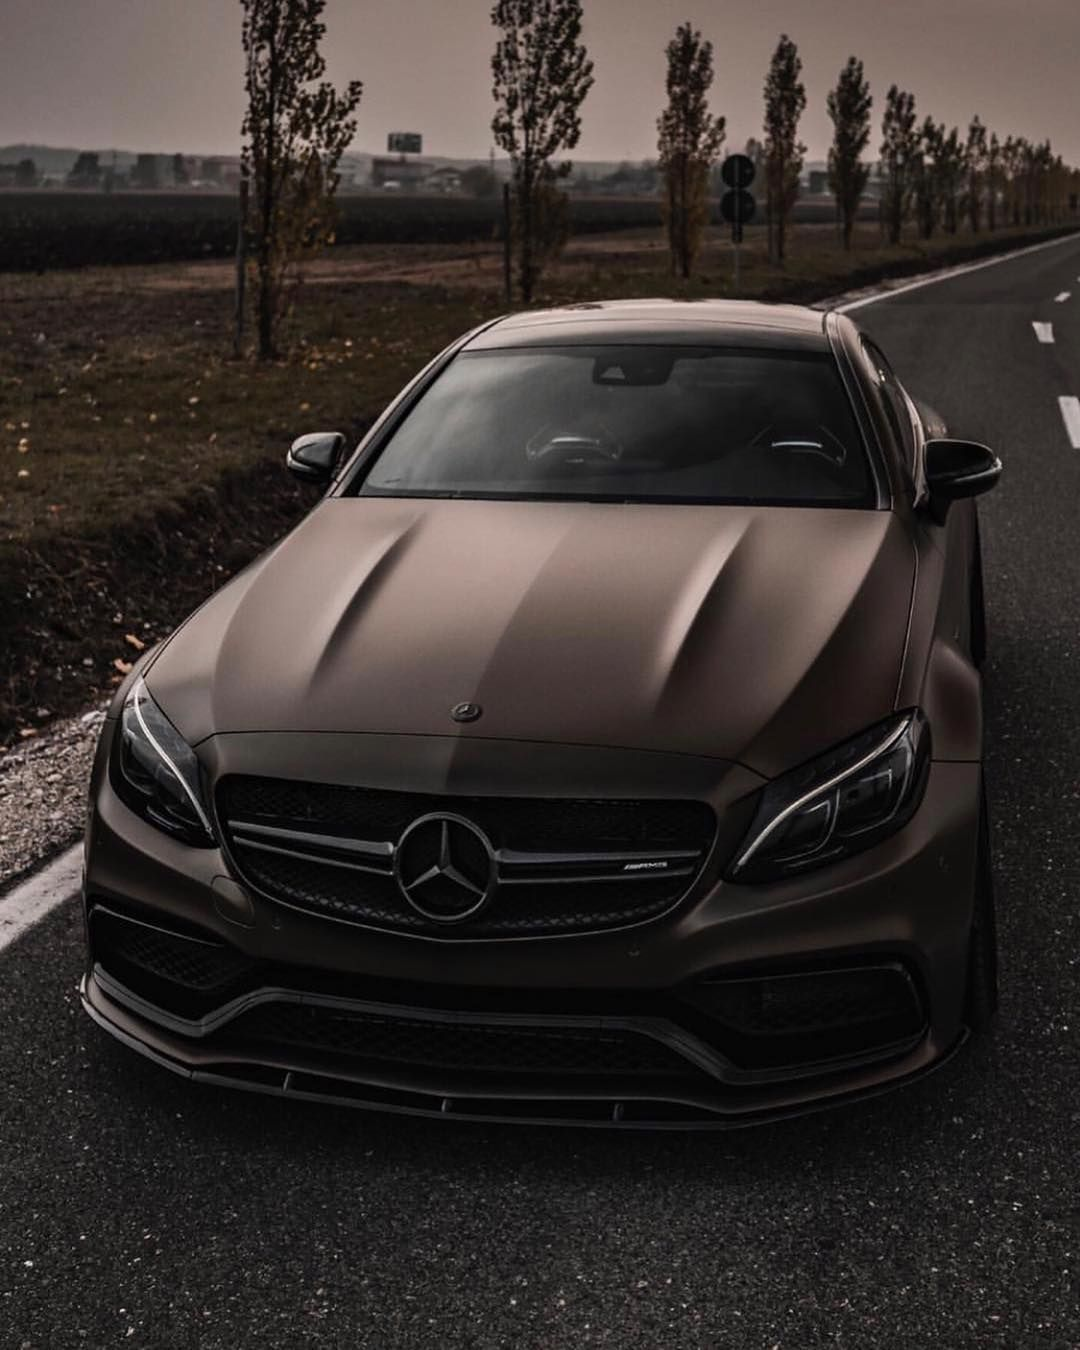 Best Luxury Cars Mercedes Benz Amg: Mercedes C63S Coupe! Beautiful And Unique Car. #mercedes